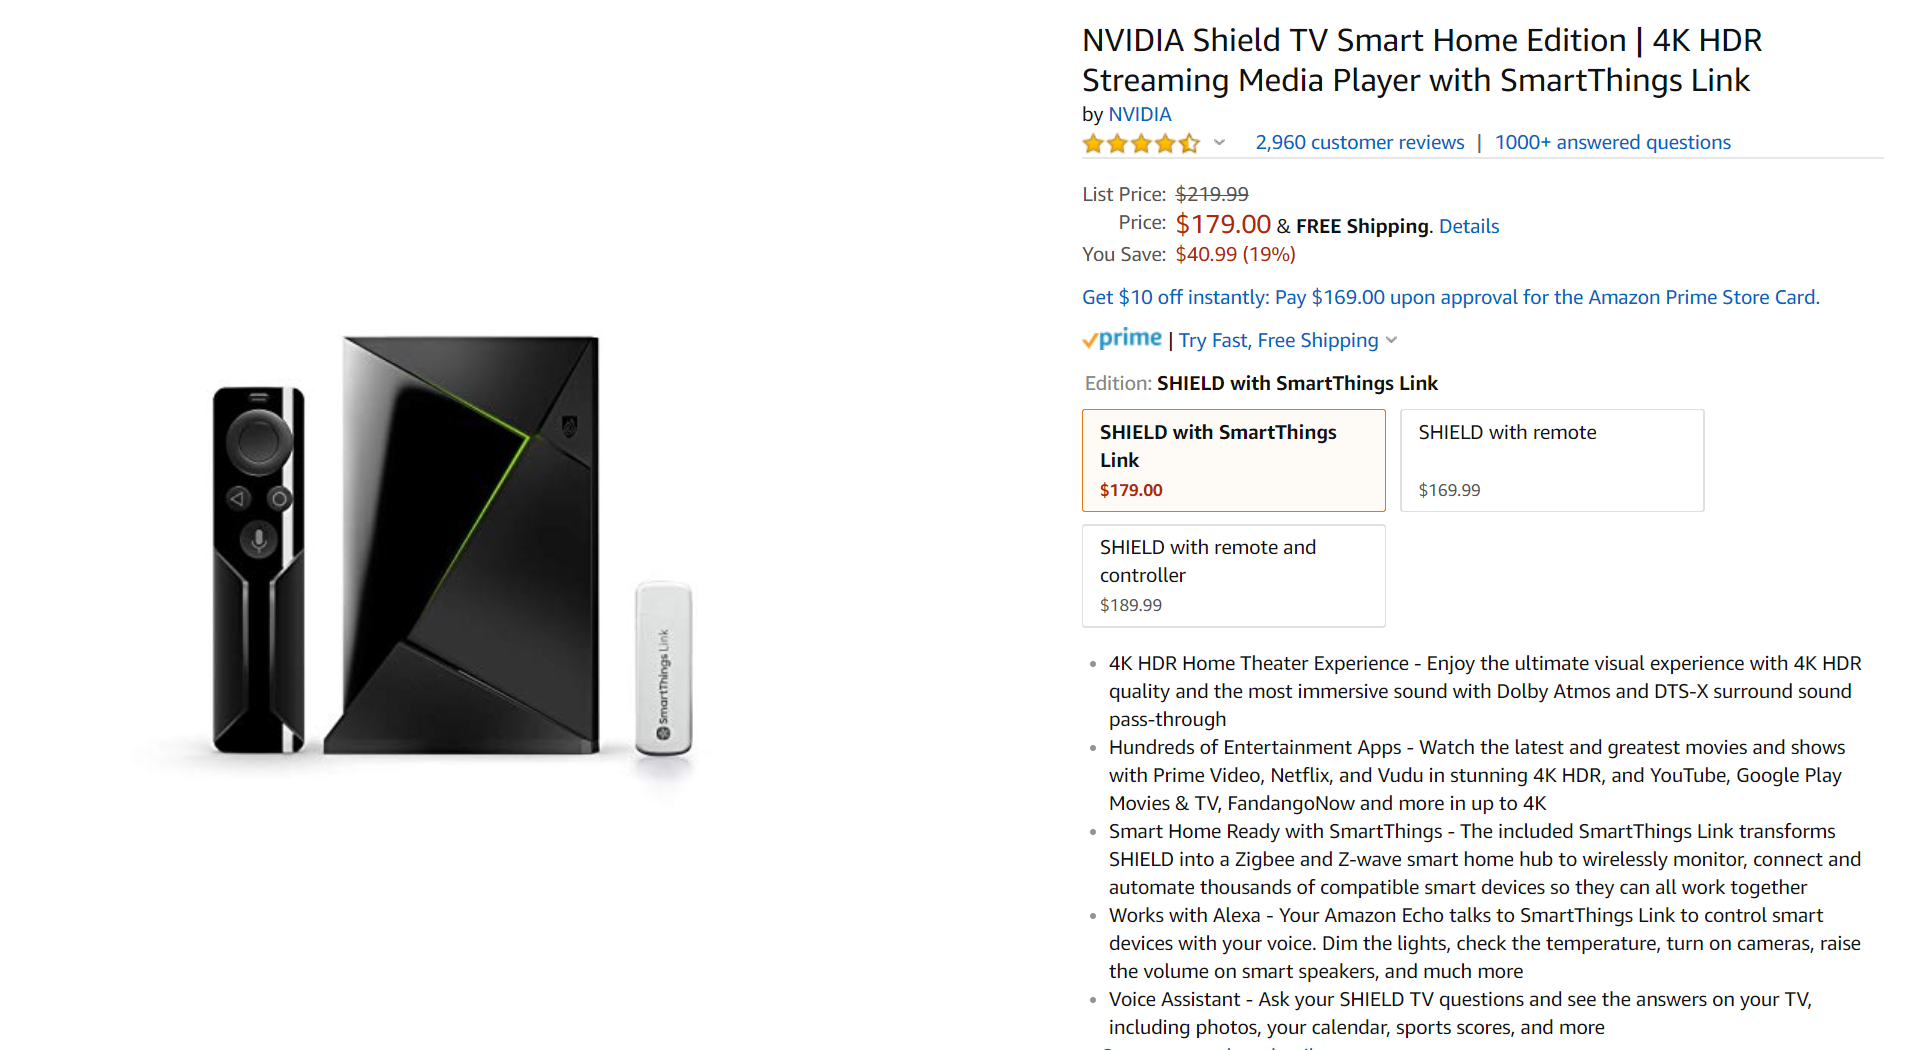 Nvidia Shield TV and SmartThings Link bundle drops to $179 ($41 off)